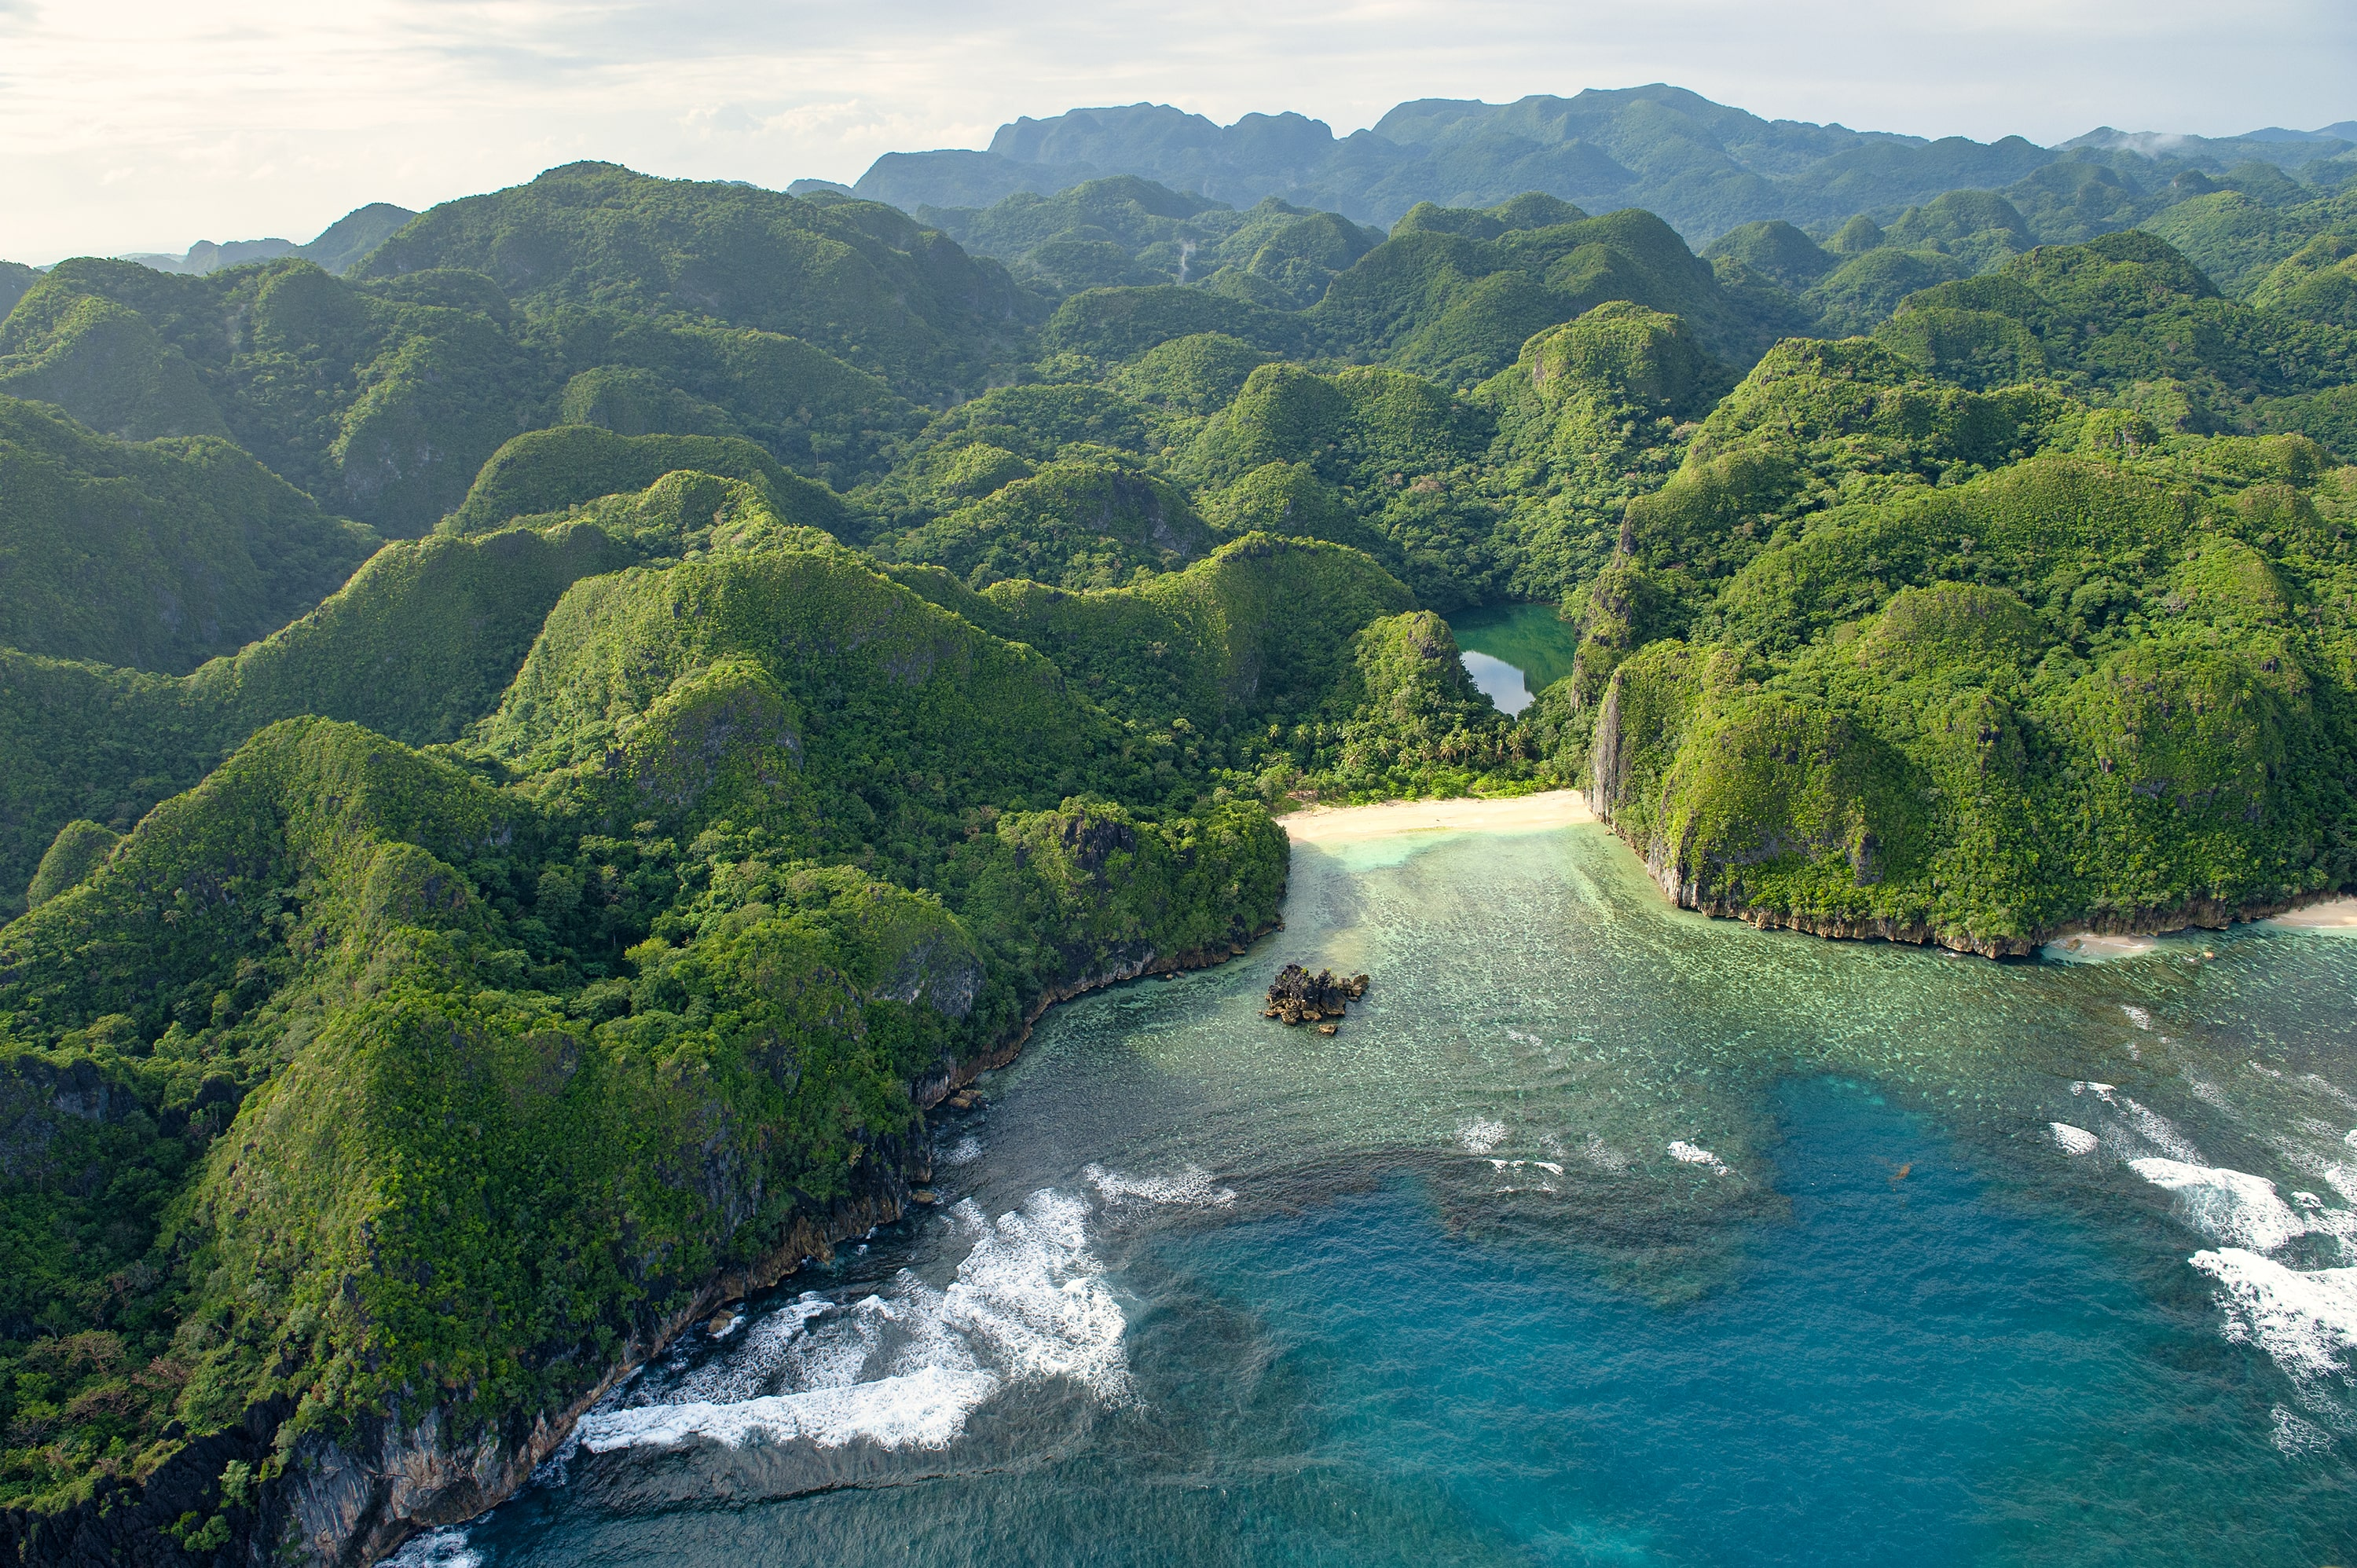 Caramoan Island seen from above